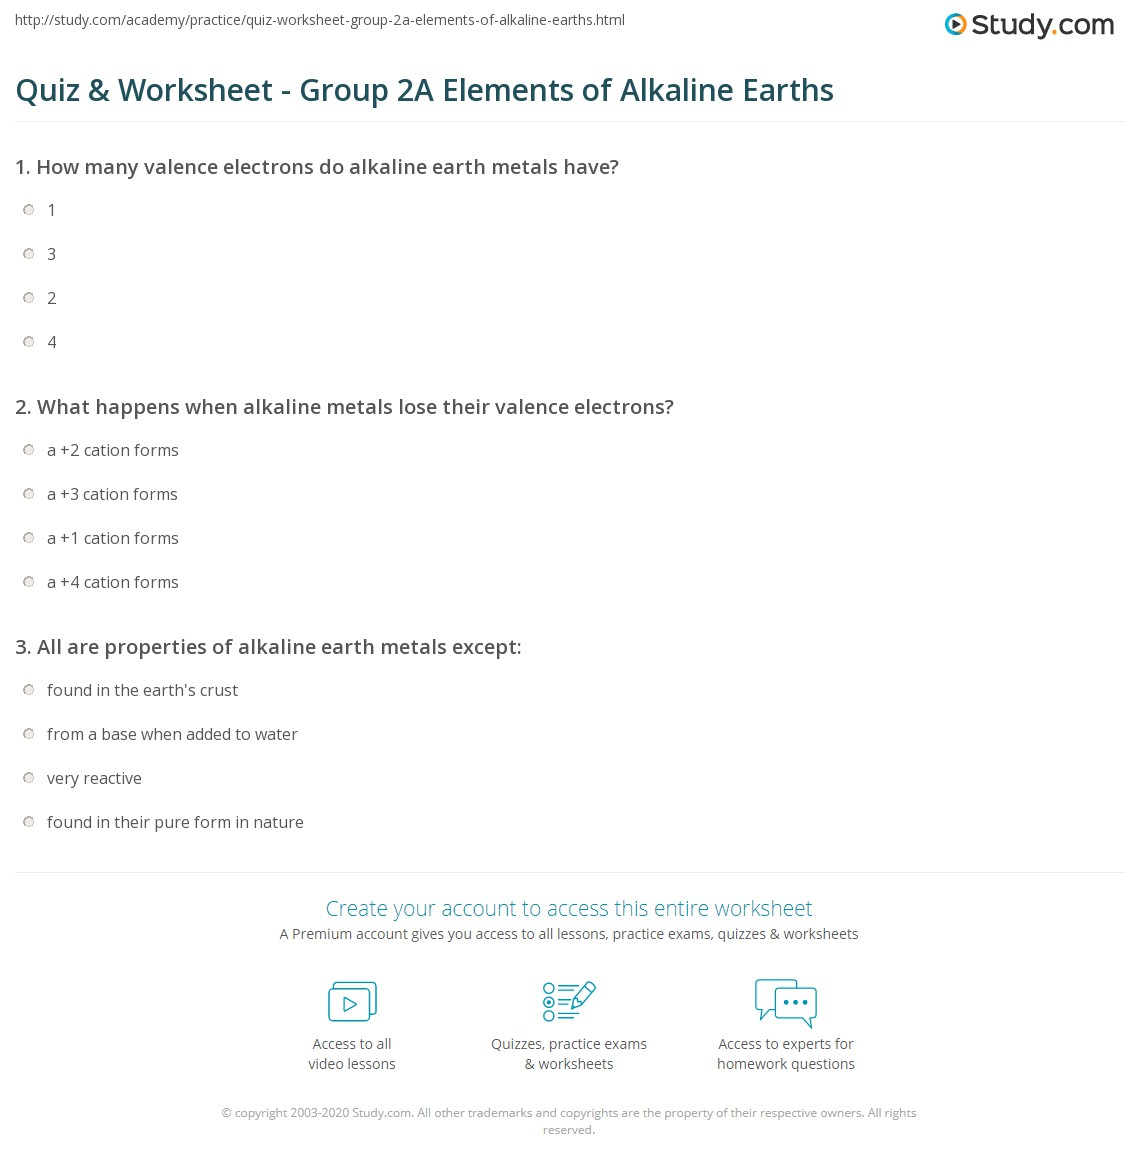 print alkaline earths group 2a elements definition properties worksheet - Characteristics Of Alkaline Earth Metals In The Periodic Table